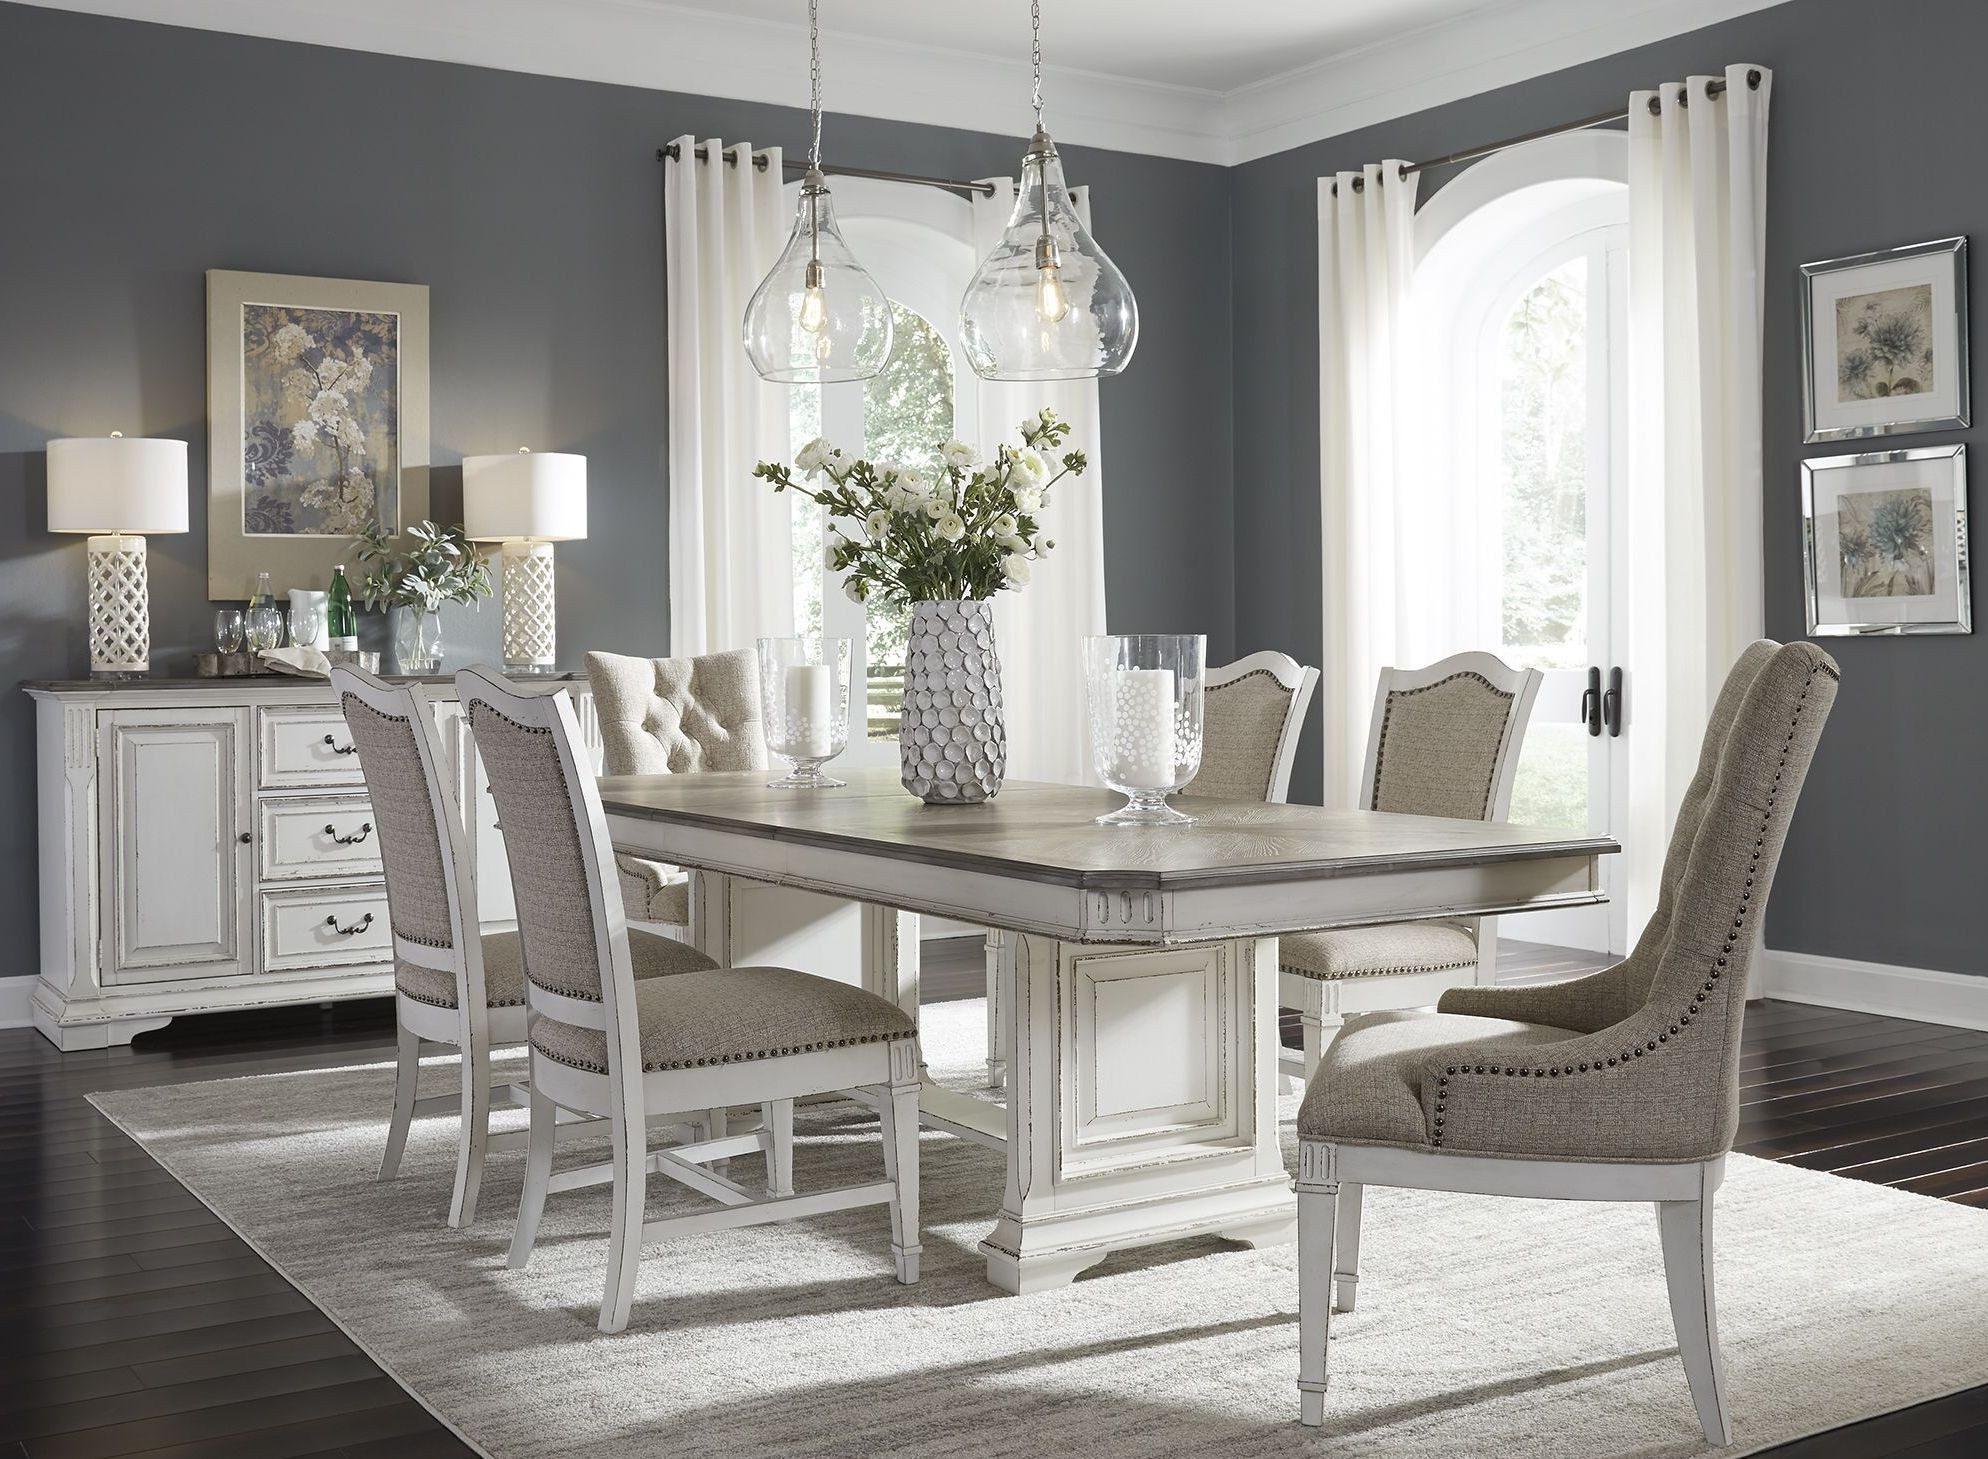 Bon Abbey Park Antique White Trestle Dining Room Set From Liberty | Coleman  Furniture